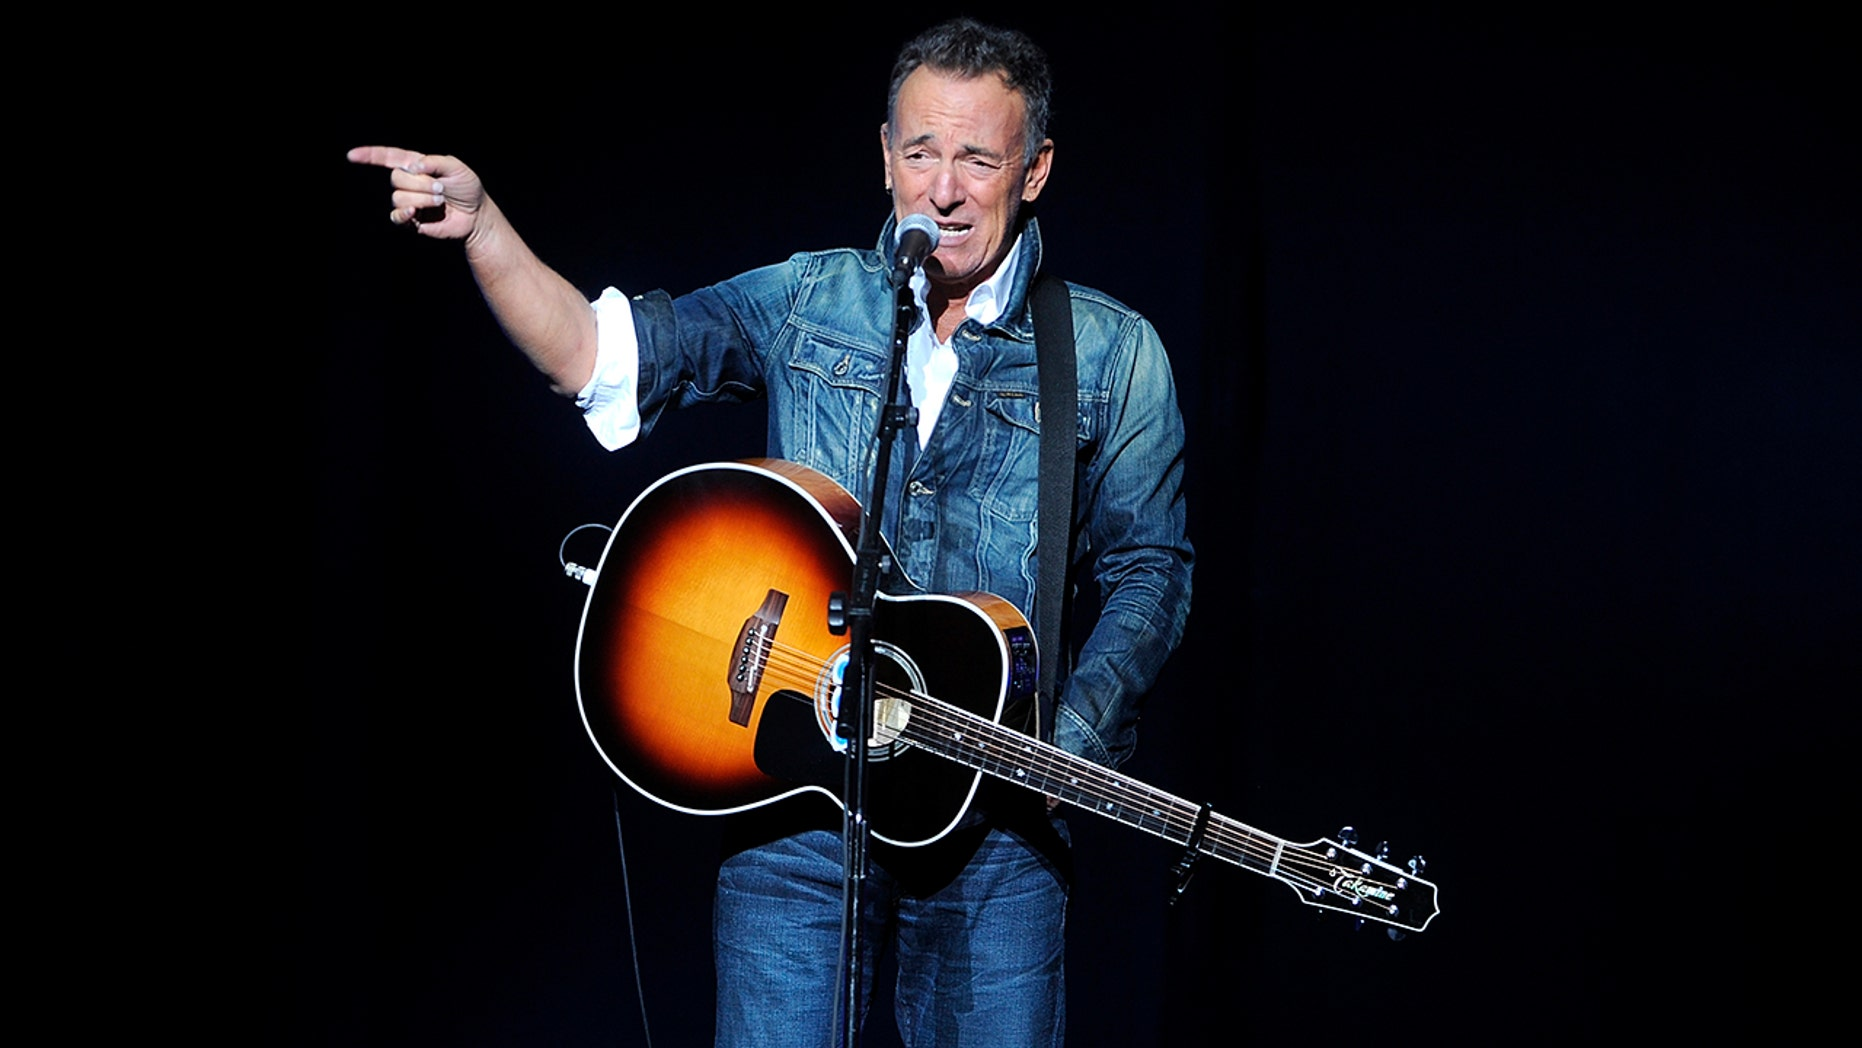 Bruce Springsteen performs at the 12th annual Stand Up For Heroes benefit concert at the Hulu Theater at Madison Square Garden on Monday, Nov. 5, 2018, in New York.